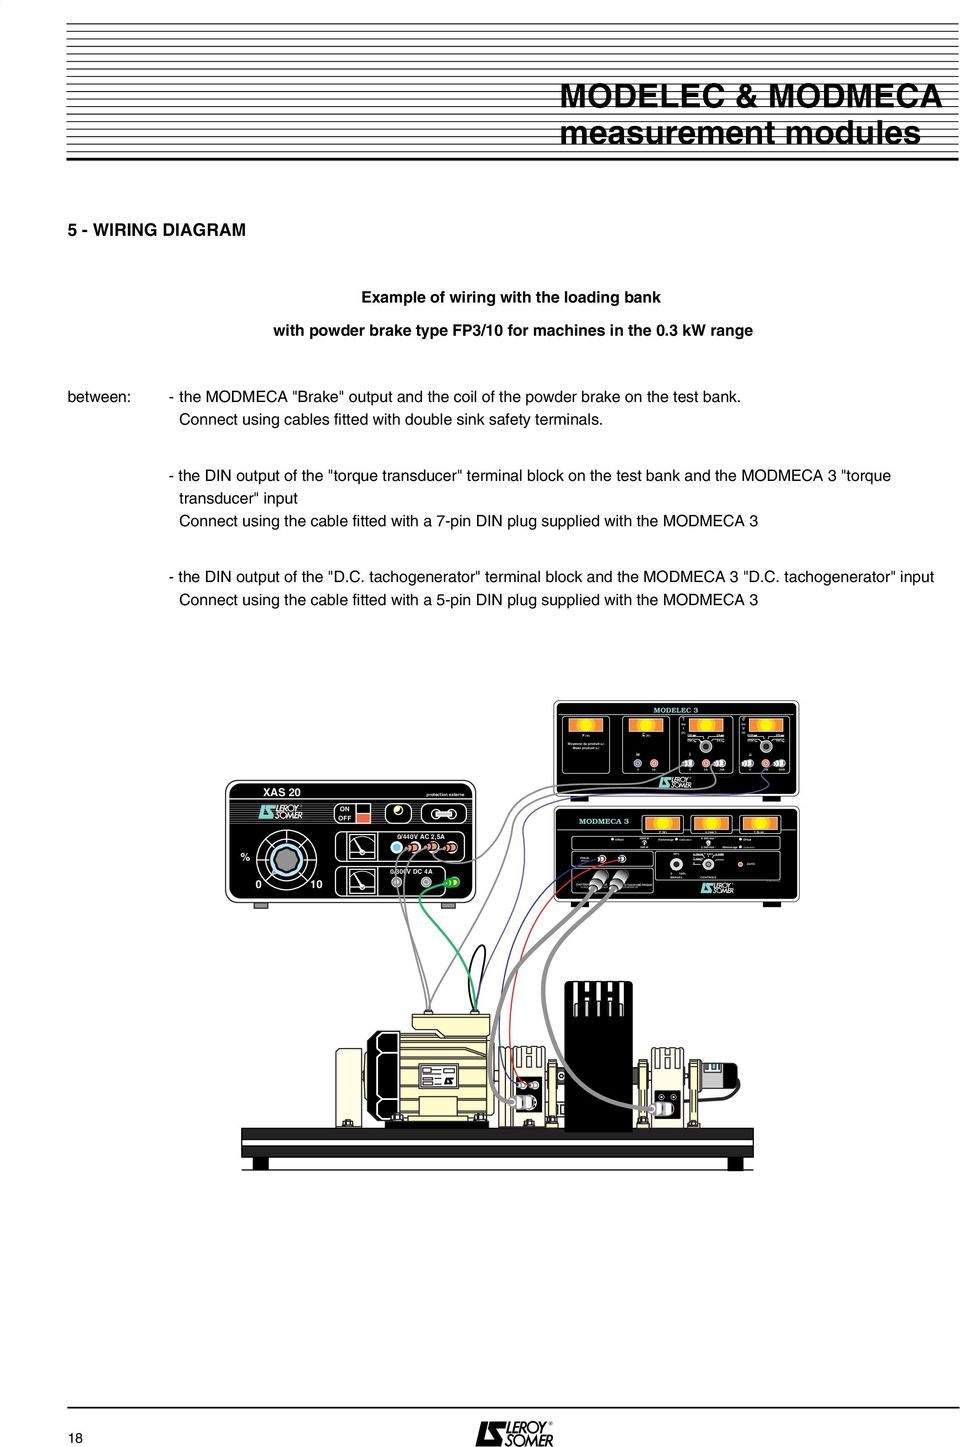 Modmeca Modelec Modules For Measuring Electrical And Mechanical Ac Wire Diagram Bank 96 5 Wrng Dagram Example Of Wiring With The Loading